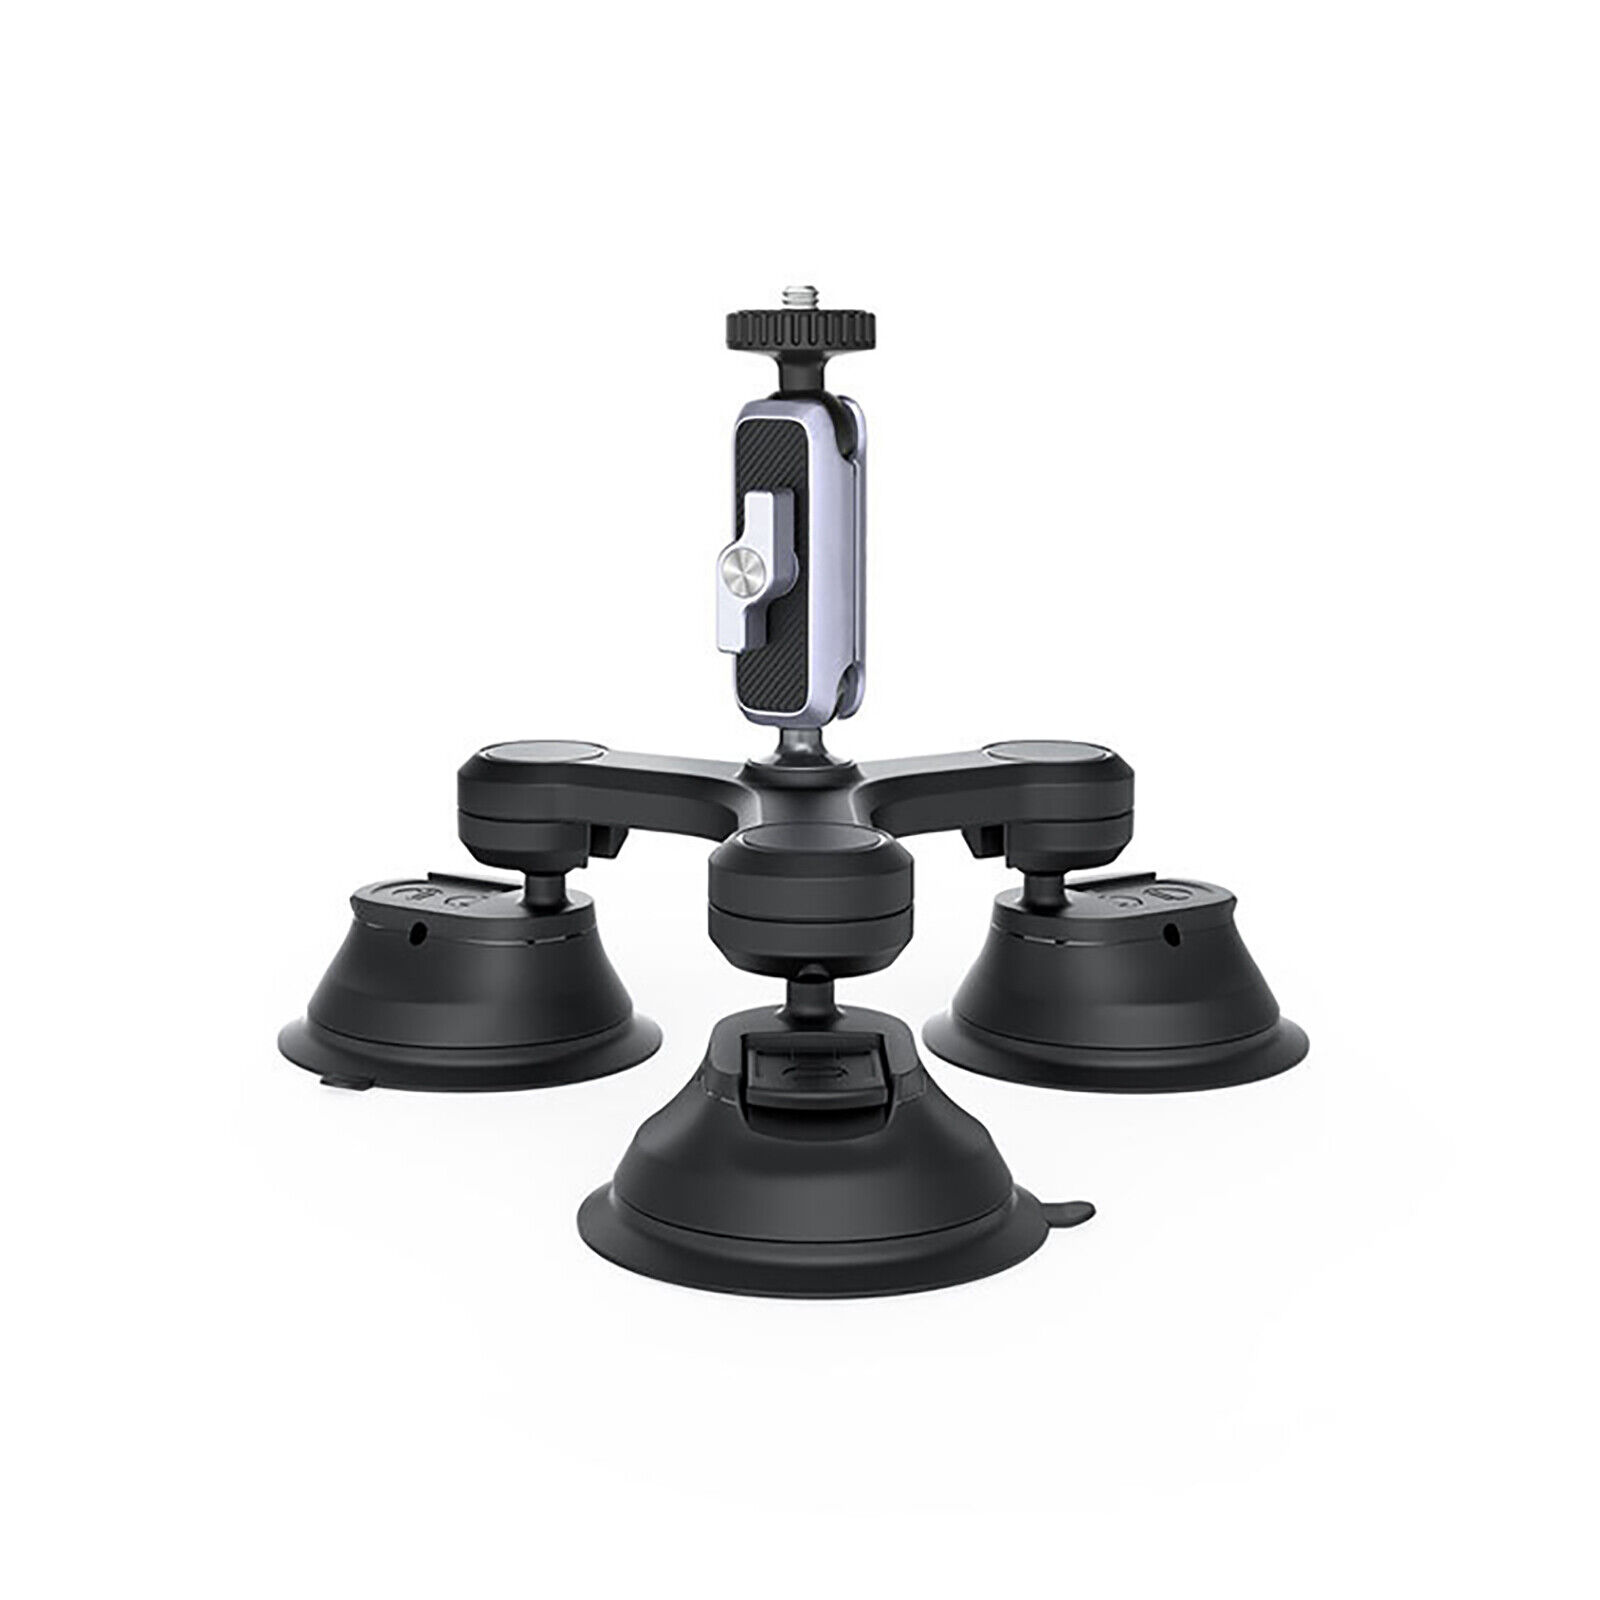 Three-ArmMount Tripod Suction Cup Stand Bracket Camera Suction Mount Car Mount